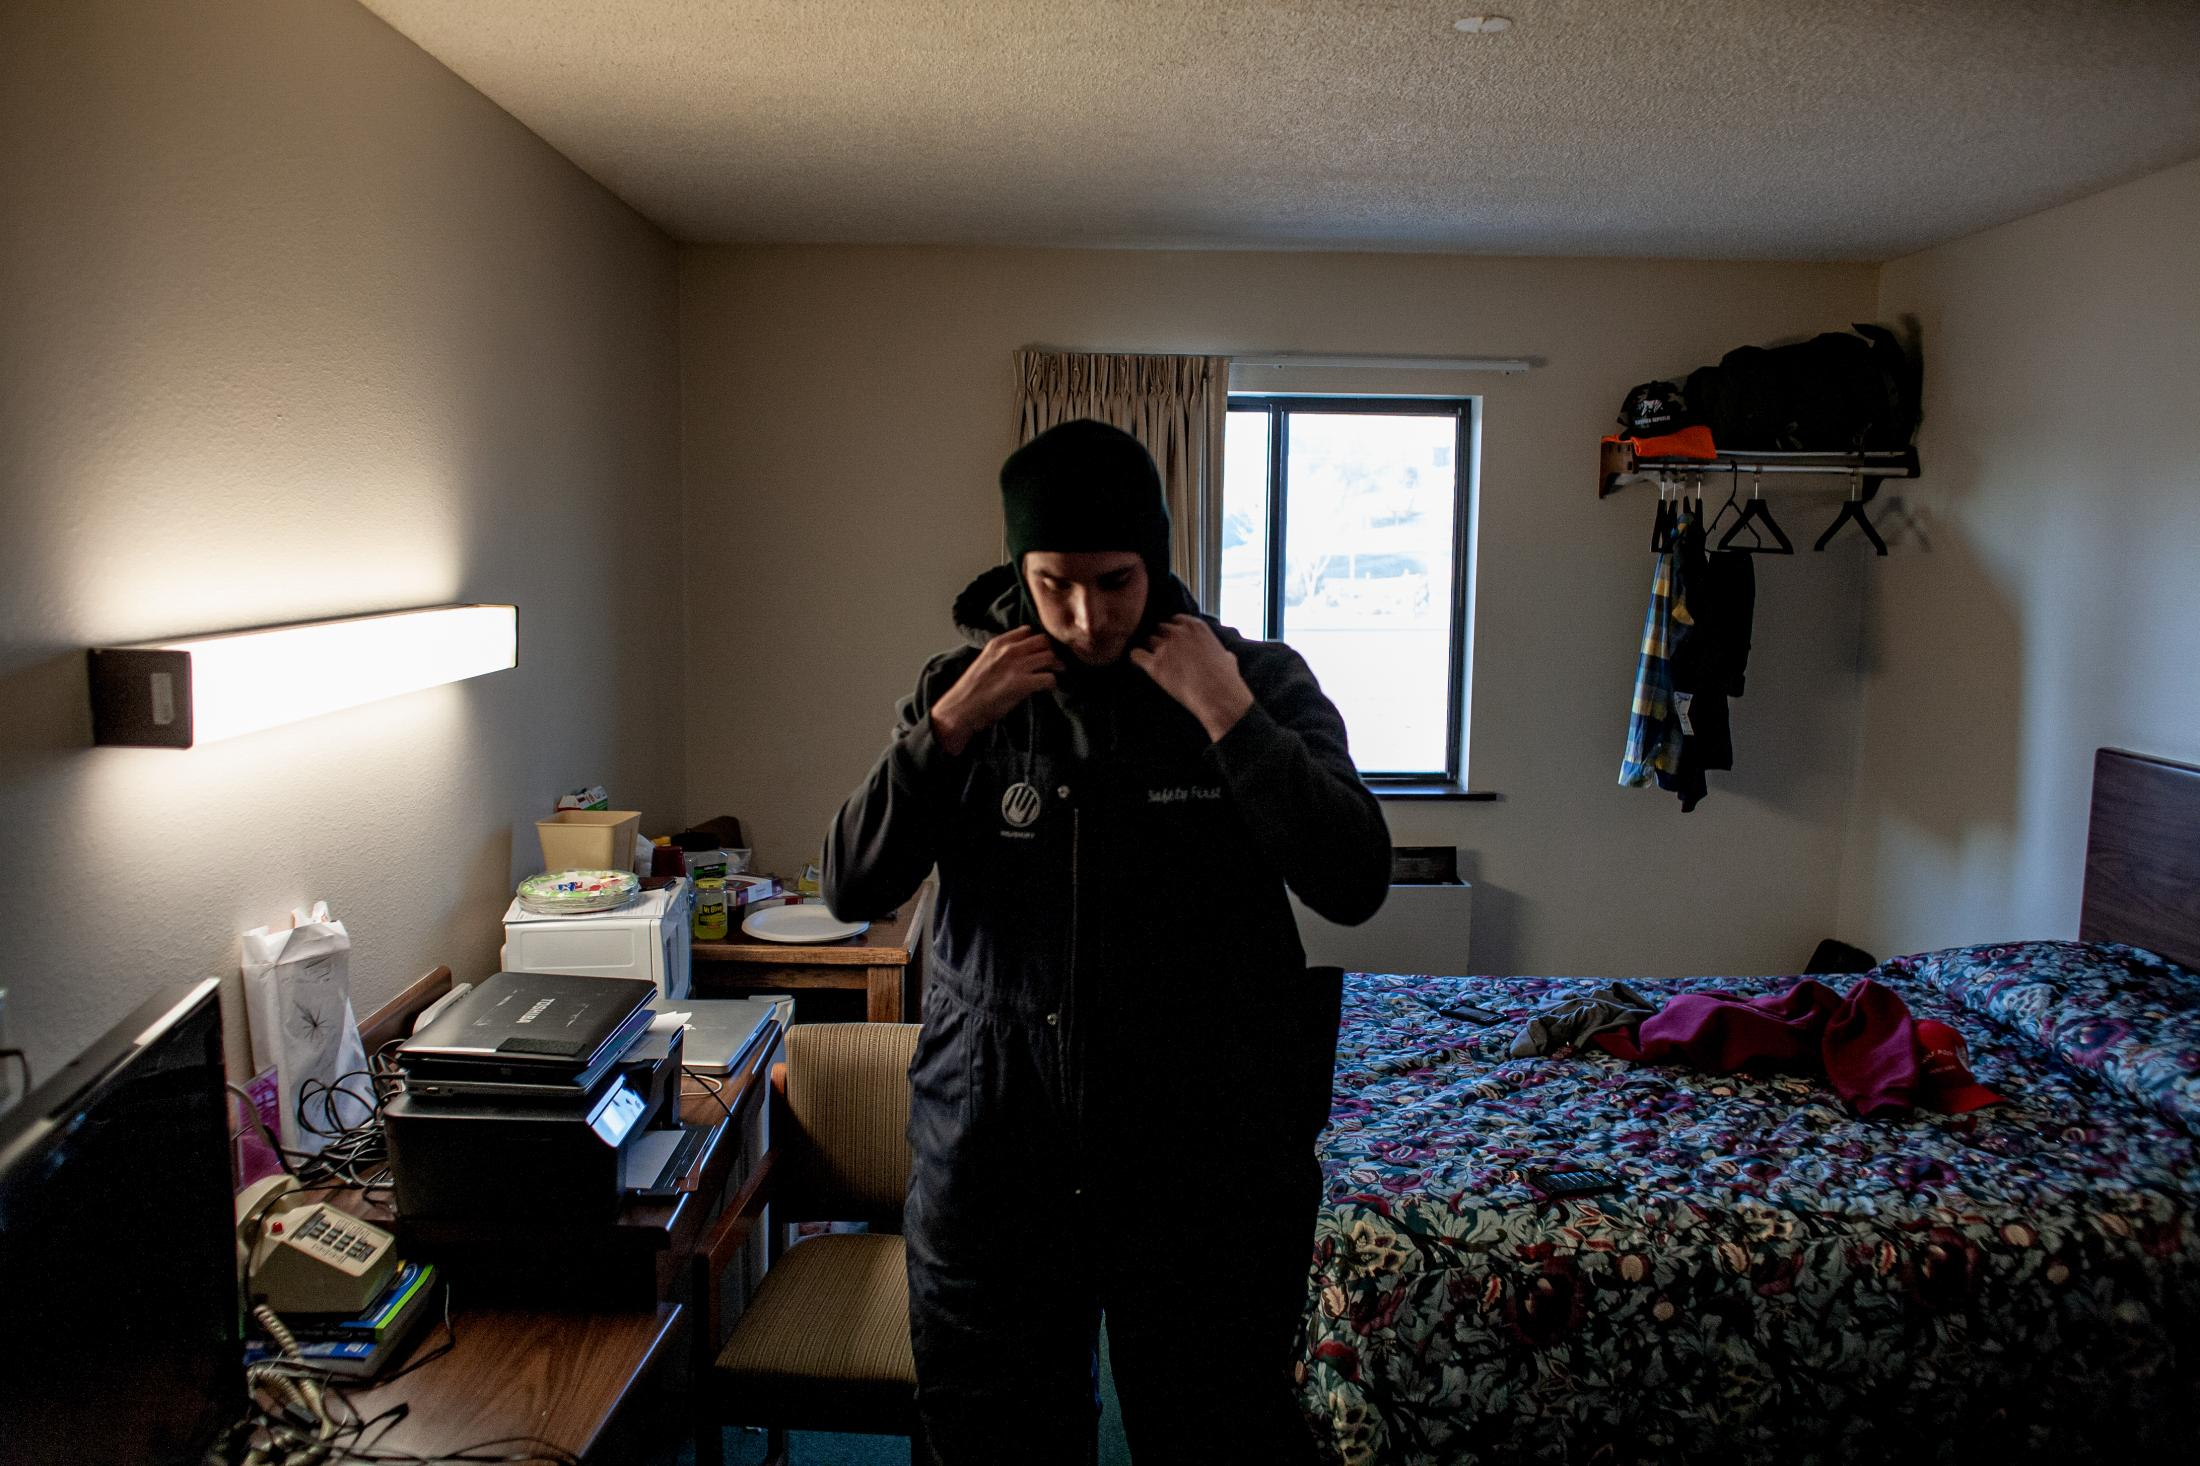 """2/6/14- North Dakota - A phone call awakens Adam Braum that more trucks will be coming to him to fill with frac sand. Adam must put on three layers of clothing to protect himself from the cold weather and winds. """"I have nightmares about the cell phone; I have only gotten two hours of sleep."""""""